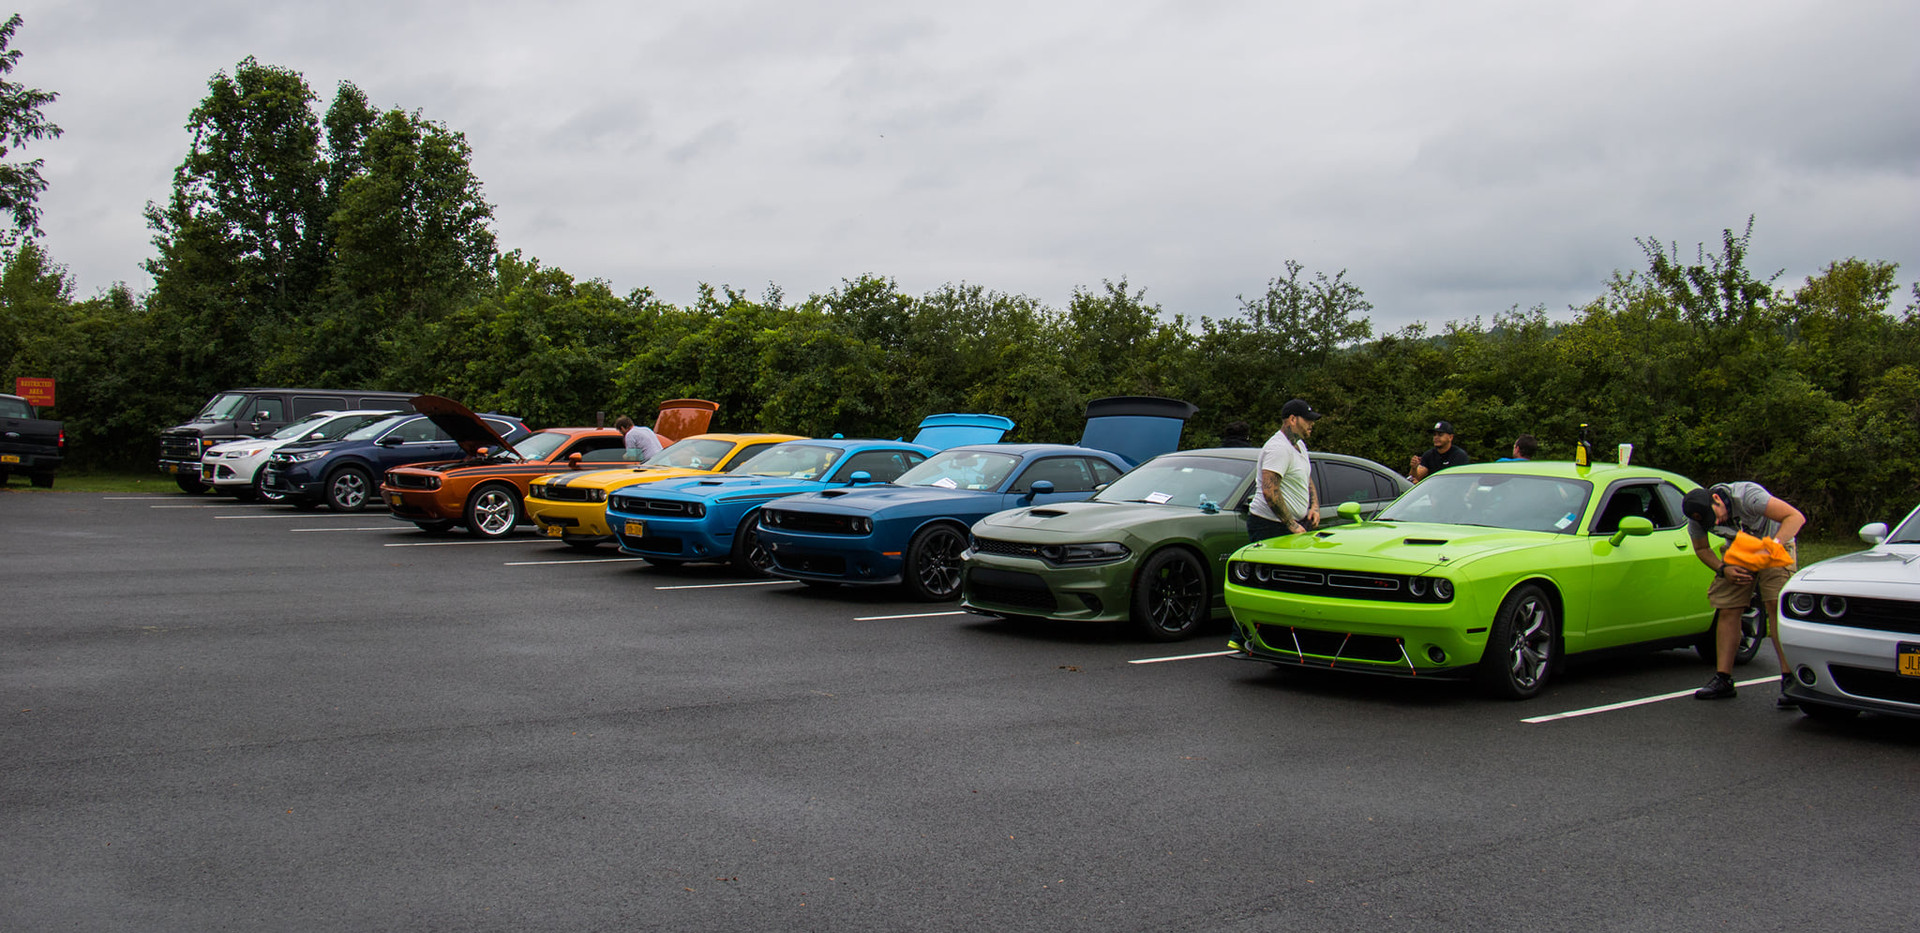 845 mopar club